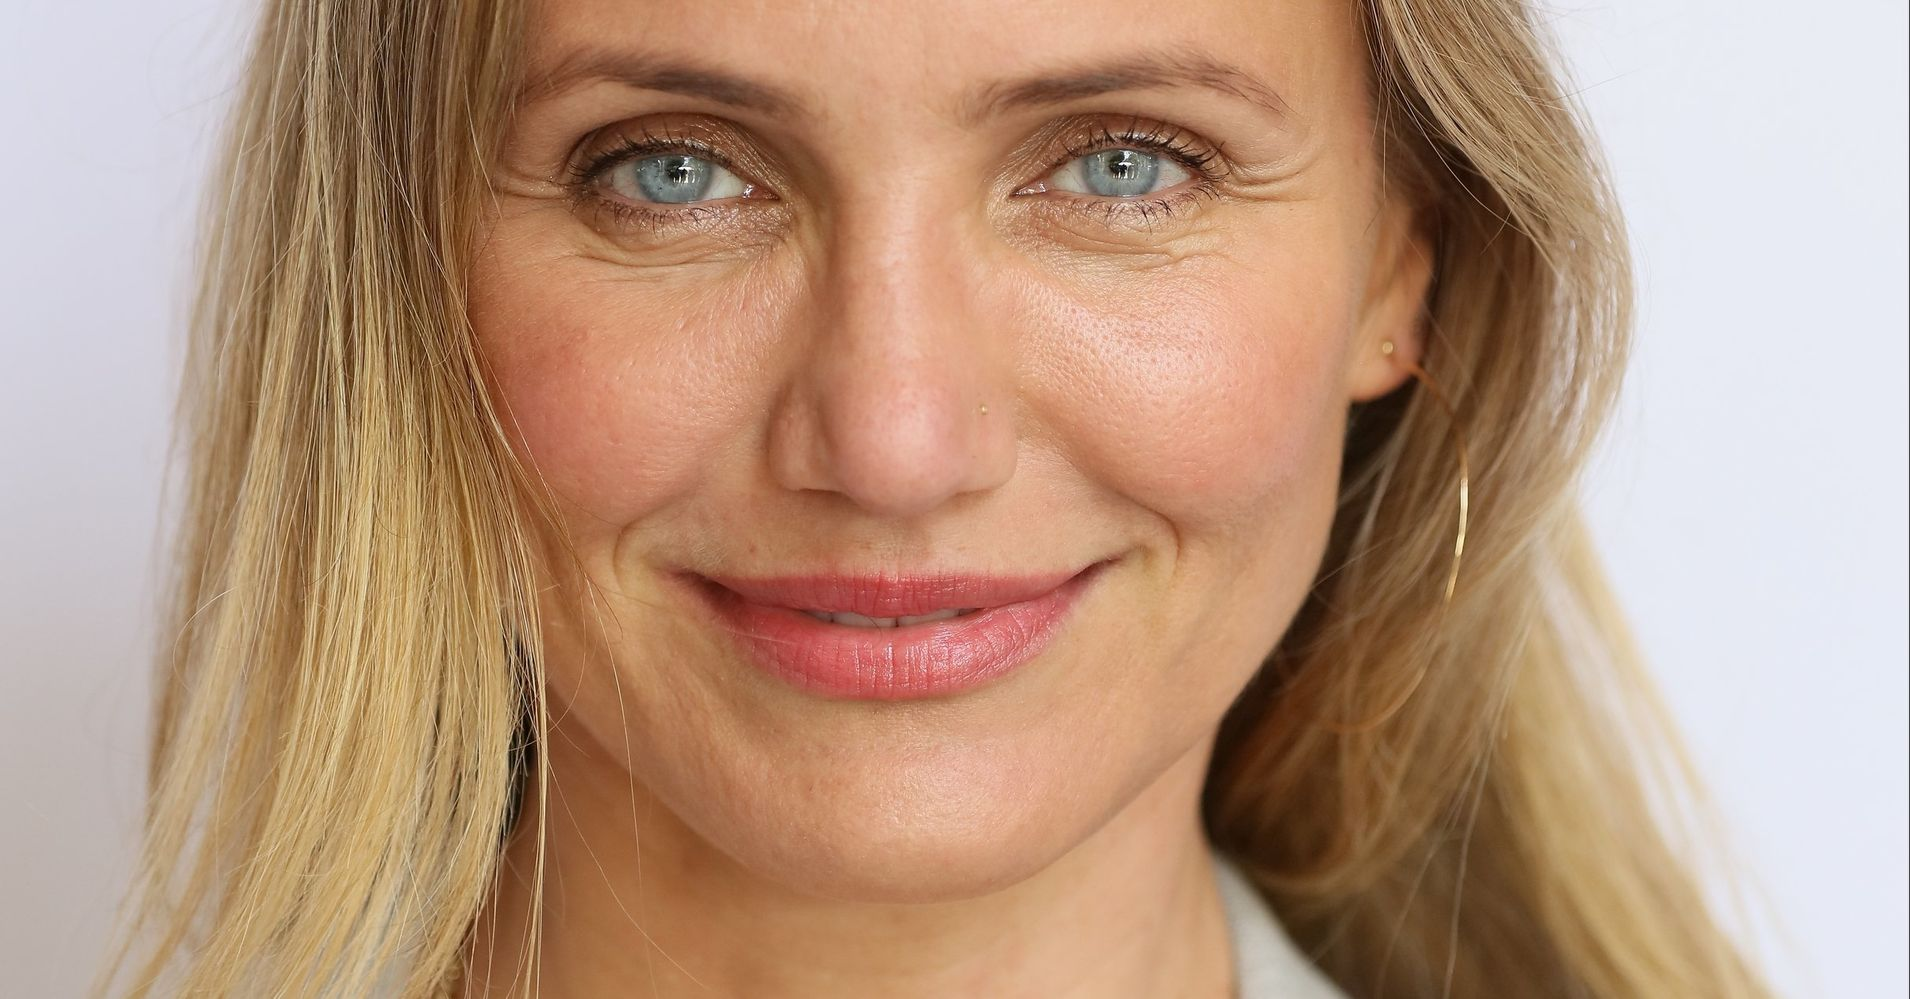 Cameron Diaz 43 Tells Women How To Get Ready For